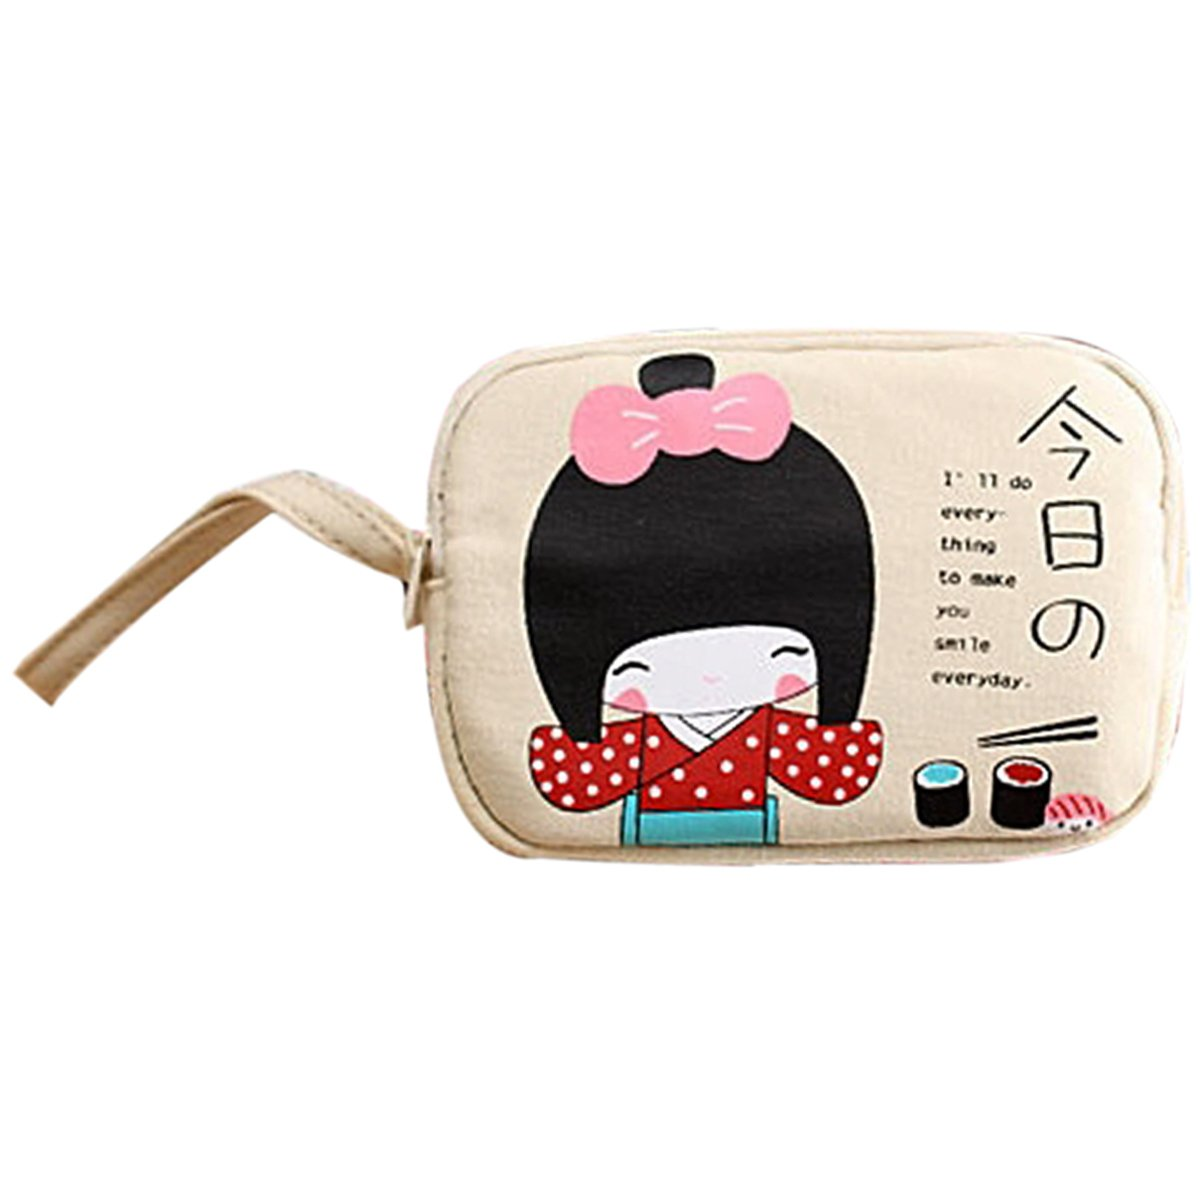 5 X SNNY NEWBRAND New Cute Japanese Girl Print Canvas Phone Bag Double Zipper Purse Coin Bag Off-White